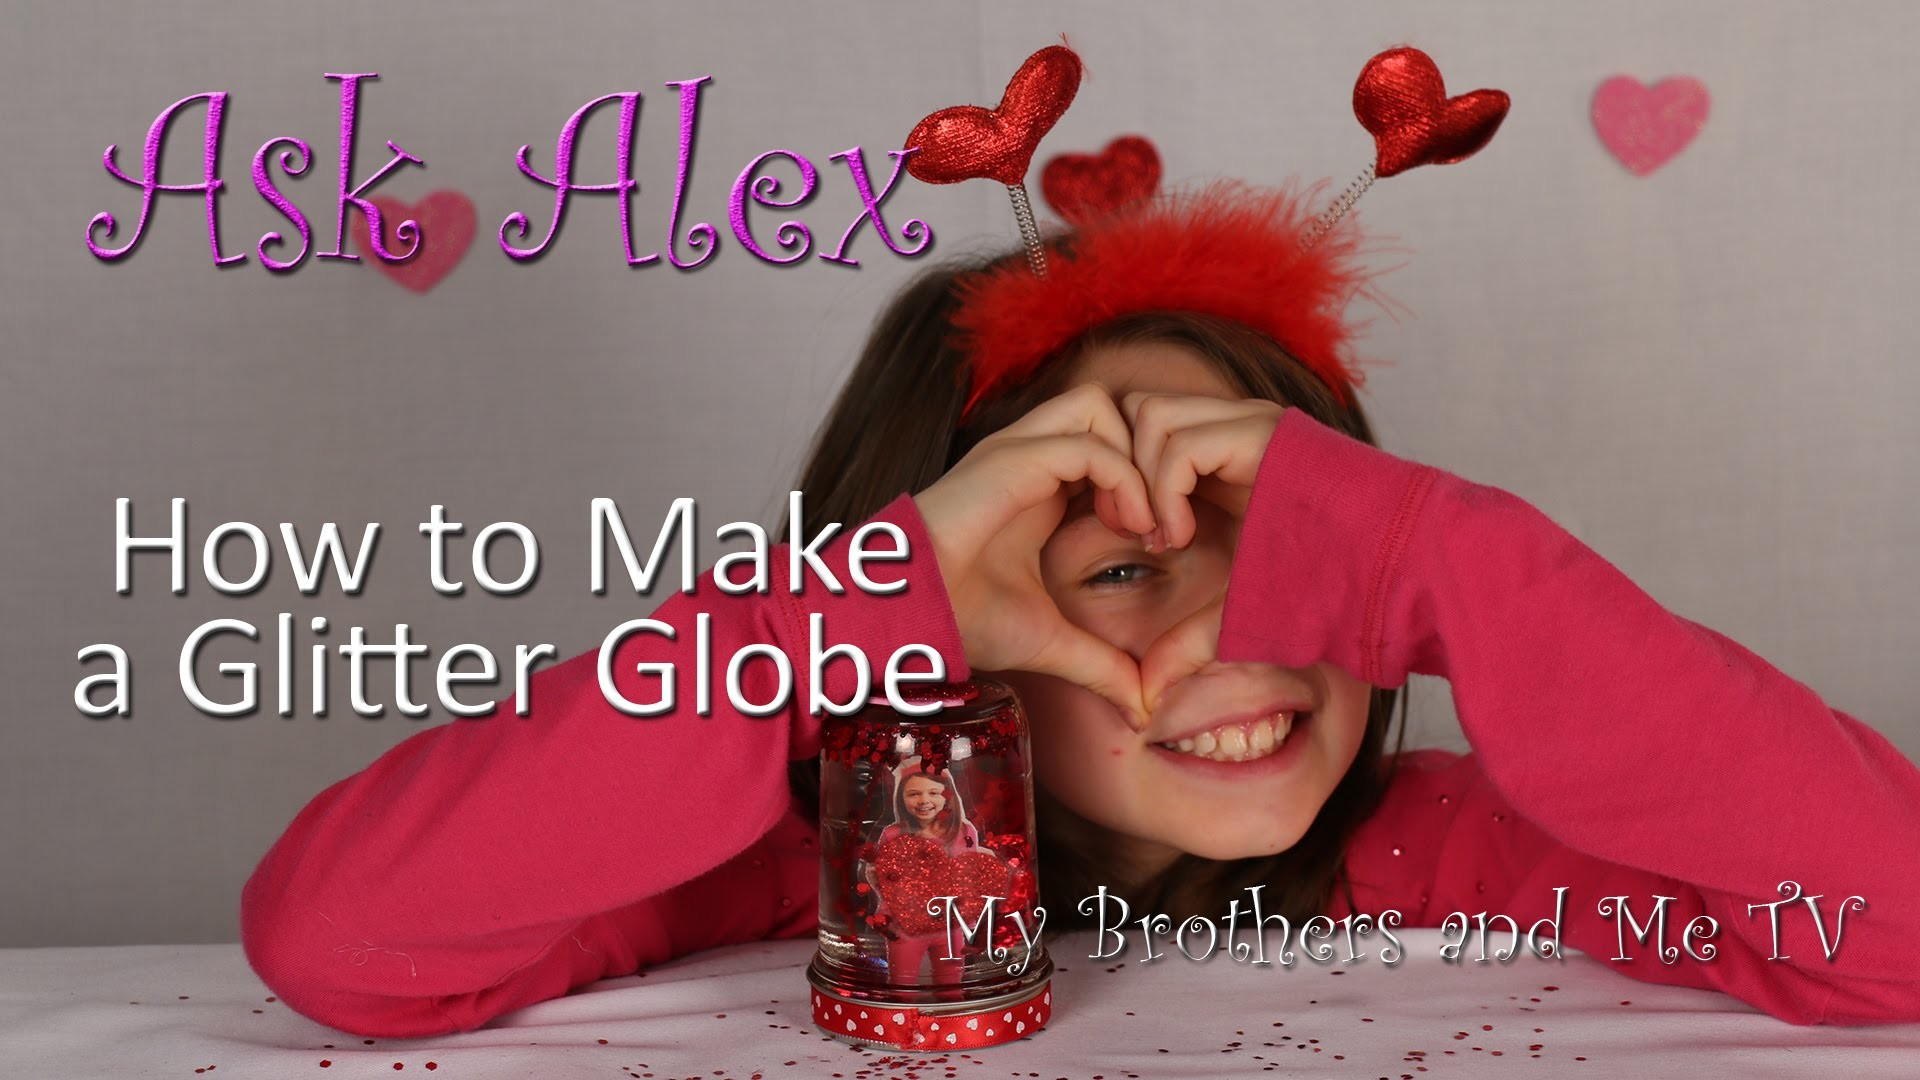 How to Make a Glitter Globe - Valentine's Day - ASK ALEX